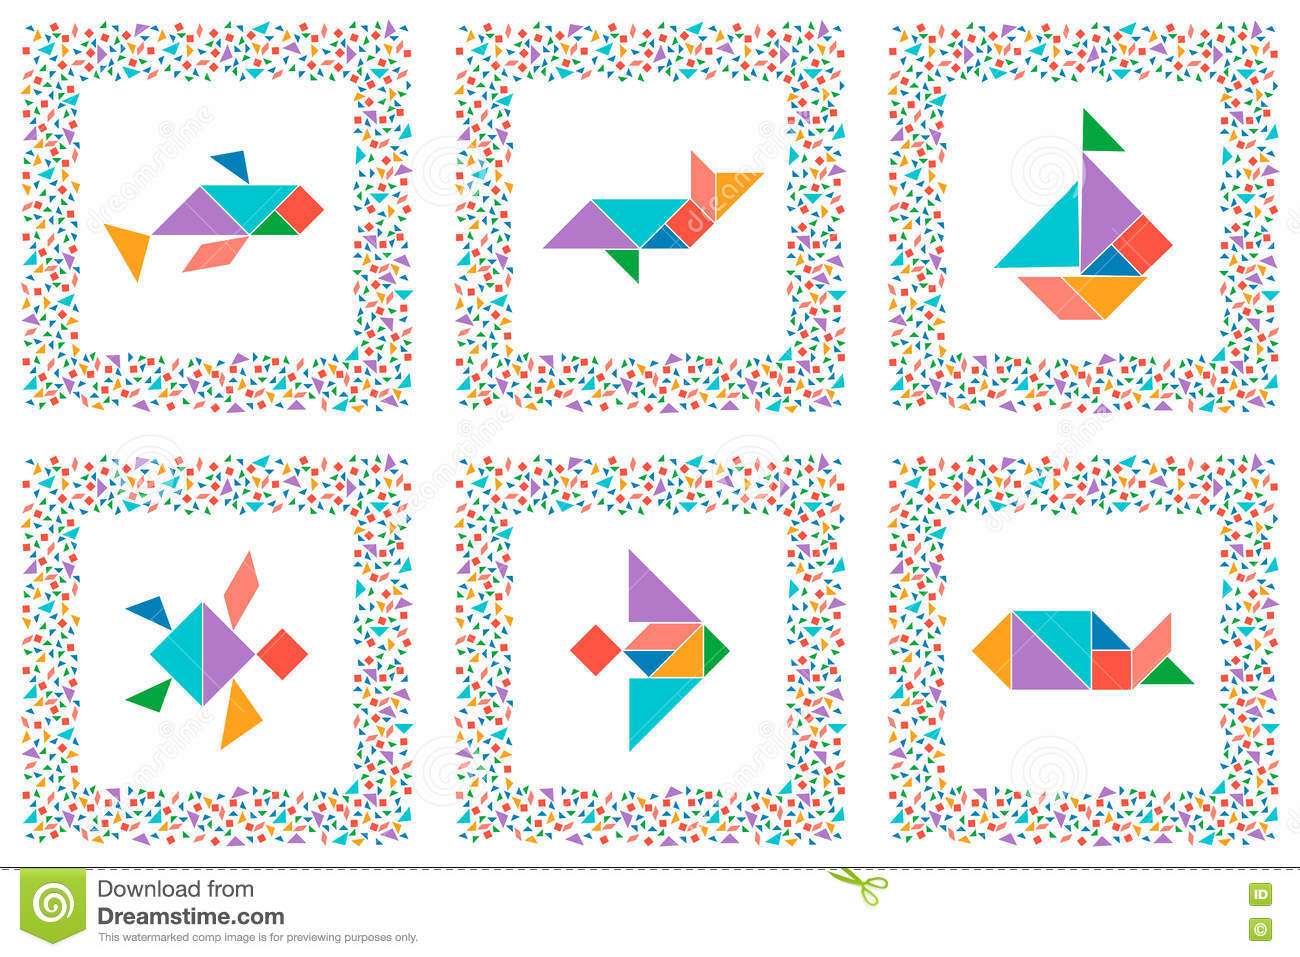 image regarding Printable Tangram Puzzles named Tangram Fixed, Sea Pets, Fishes, Sailboat Inventory Vector